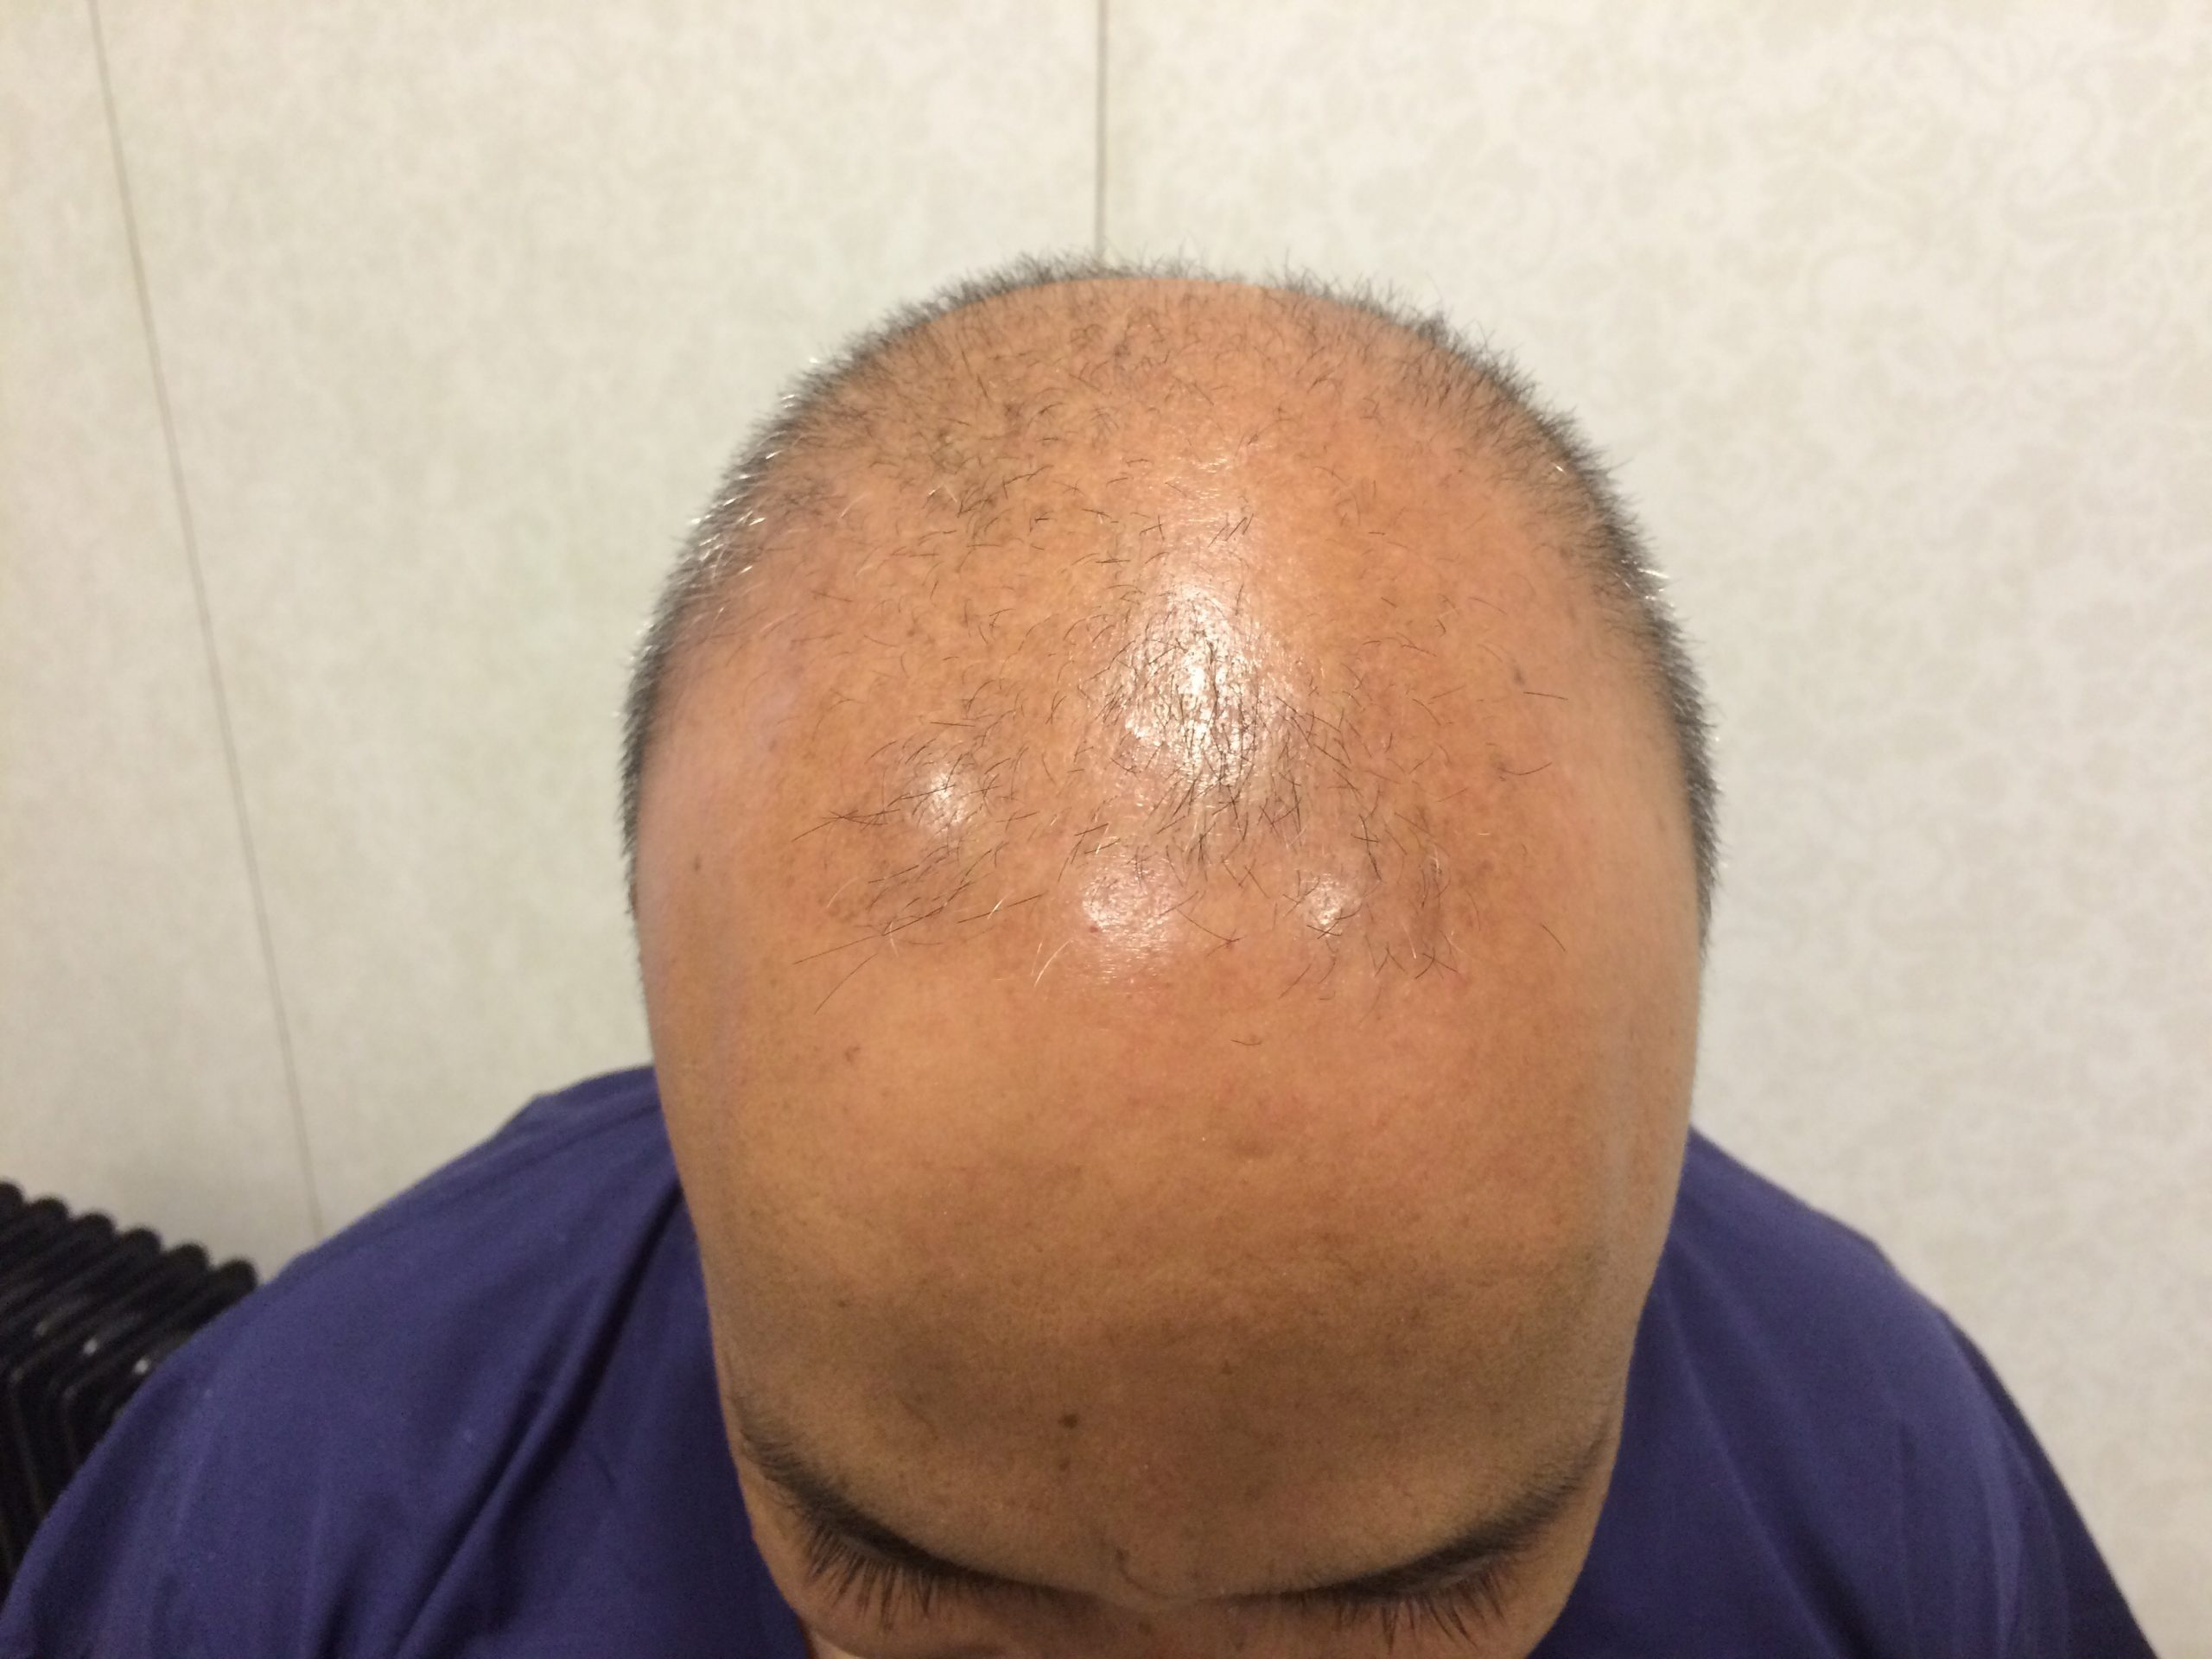 Indian names for FUE Hair Transplant